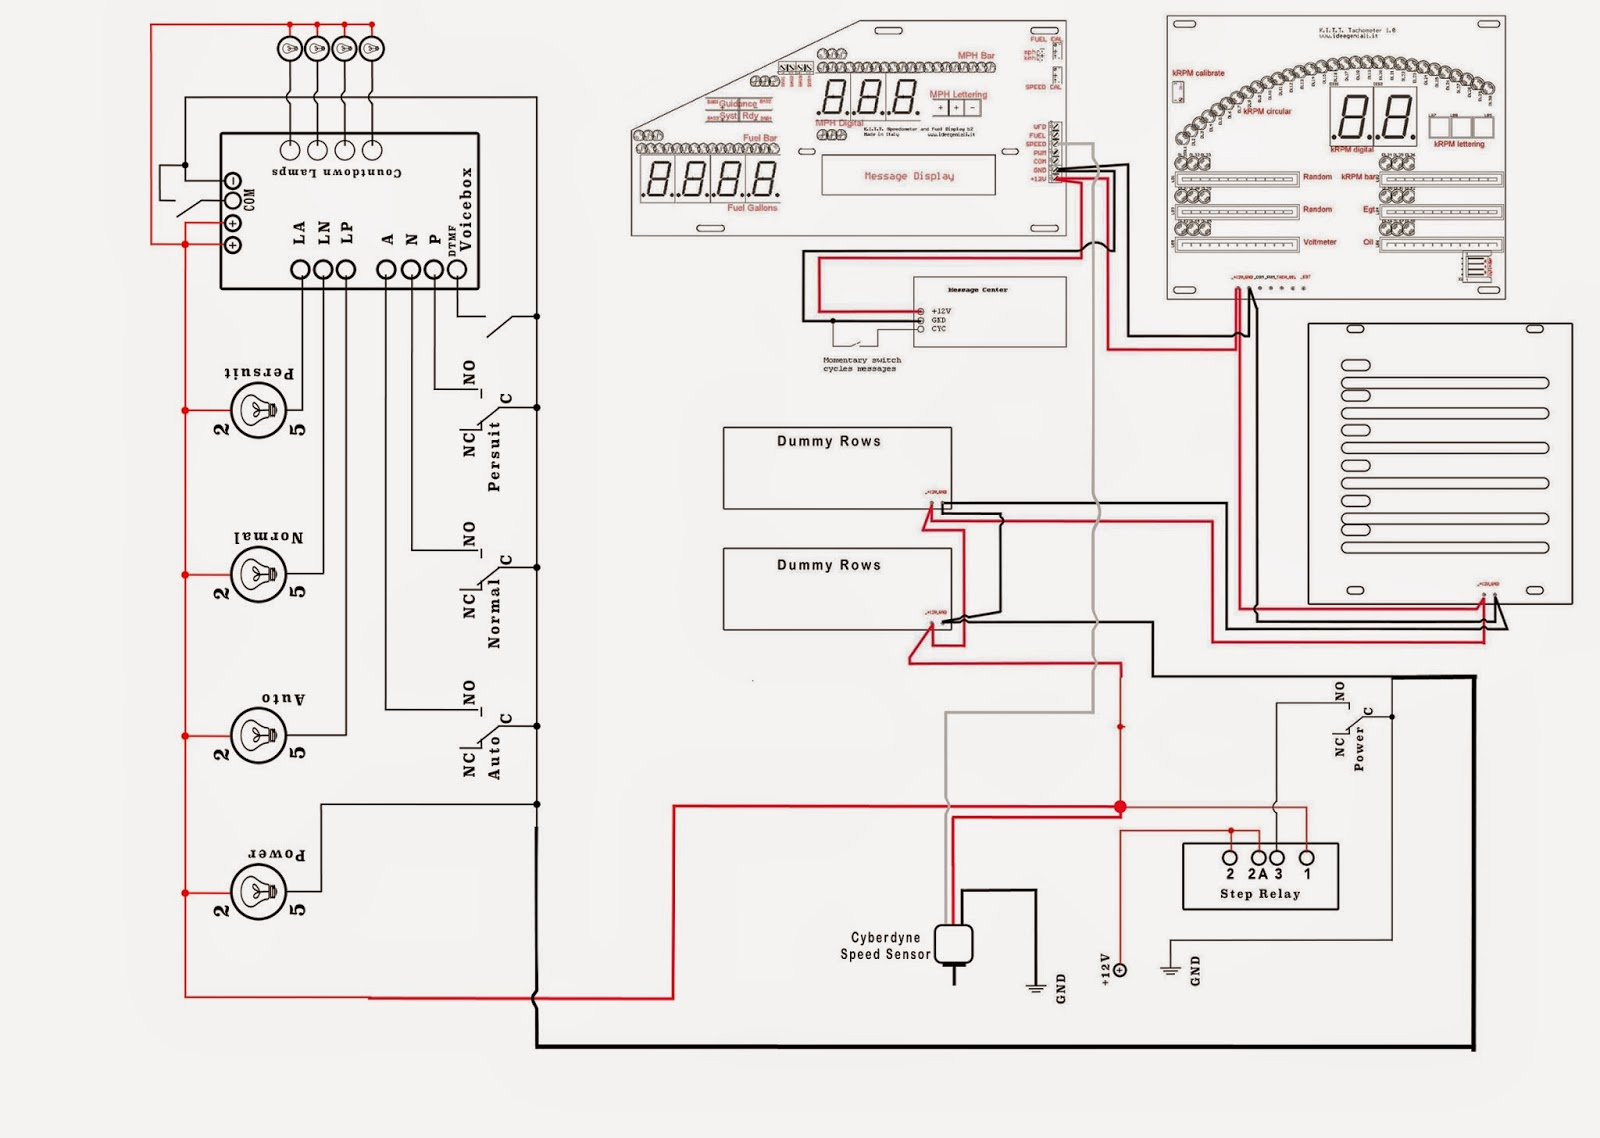 my knight rider 2000 project diagrams and schematics 2003 Yukon Dash Schematic dash electronics wiring diagram